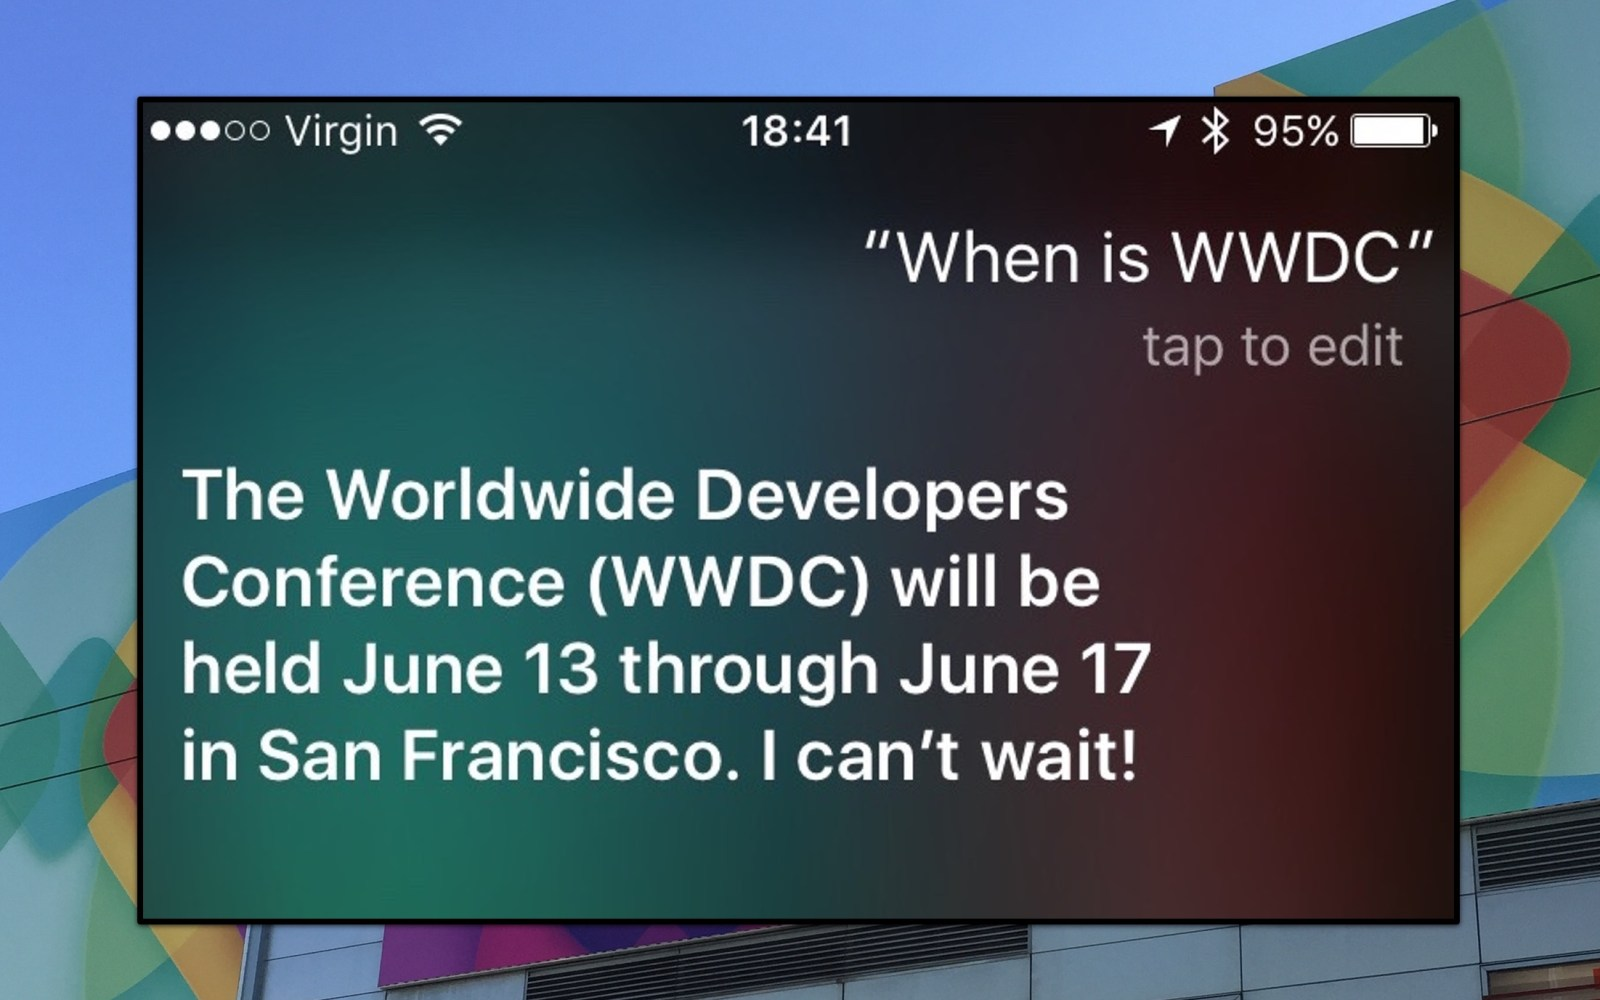 Siri announces WWDC 2016 will be held June 13th through June 17th in San Francisco [Update]